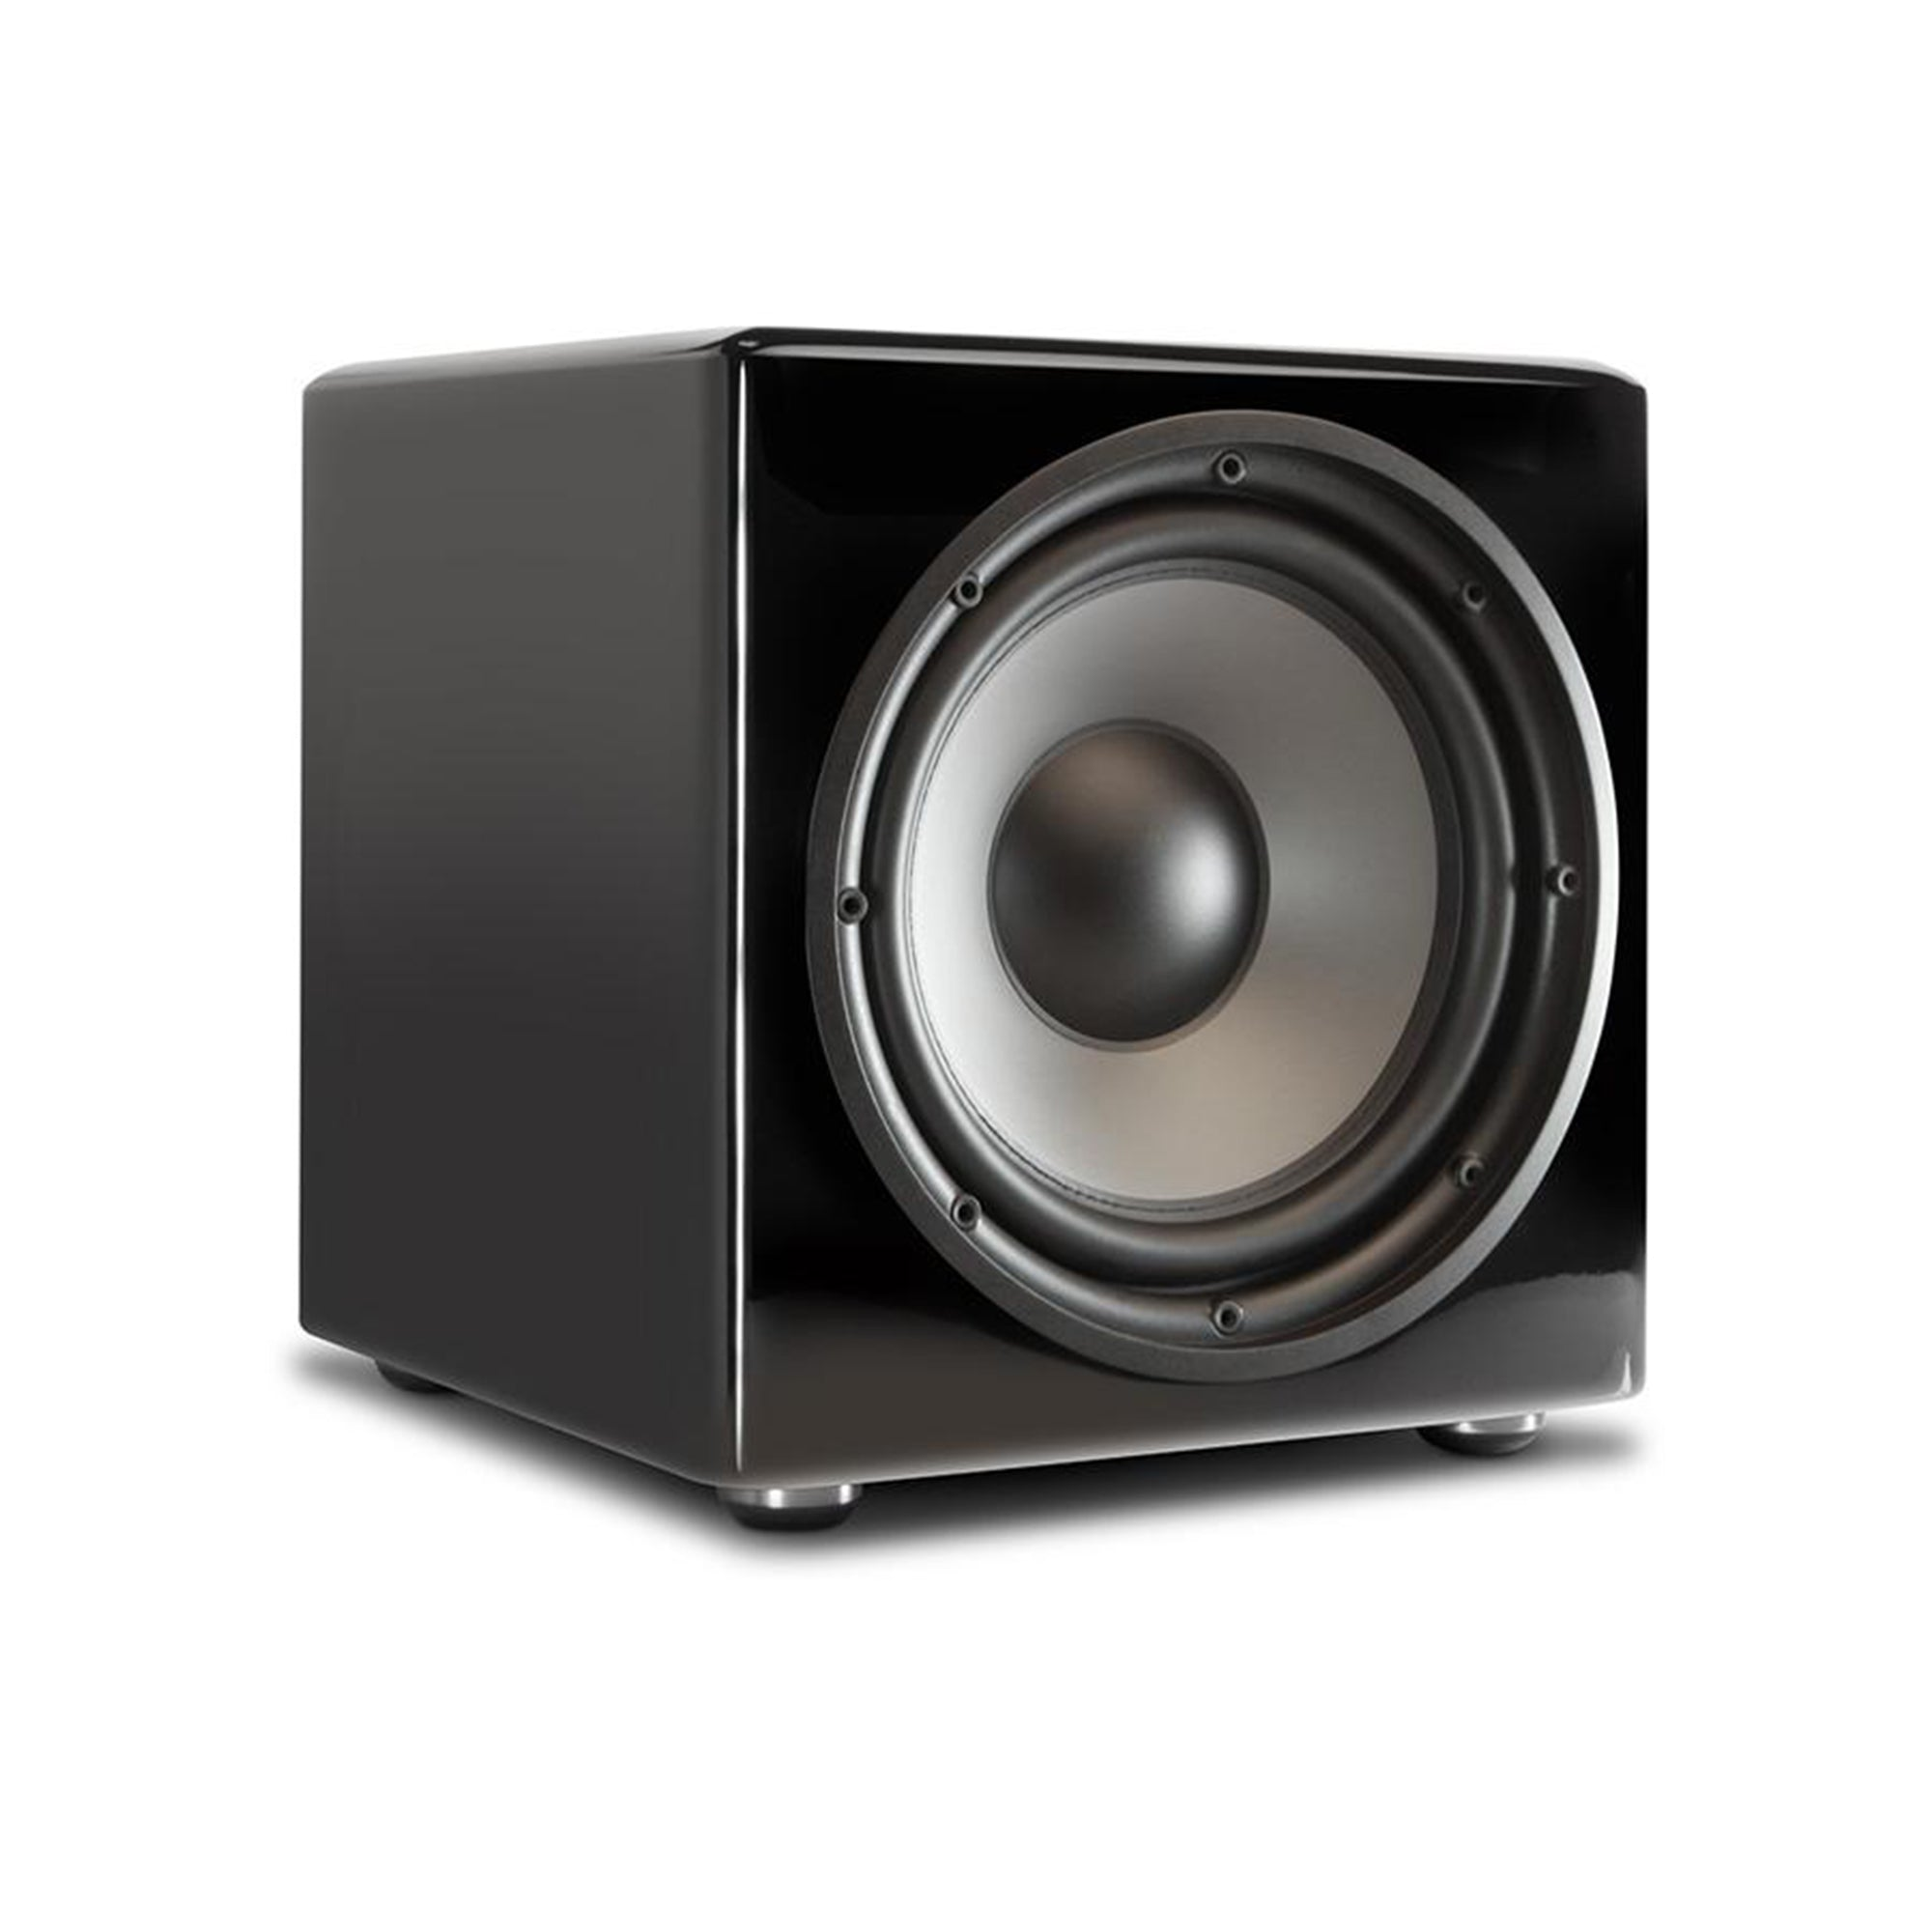 PSB SubSeries 350 Subwoofer